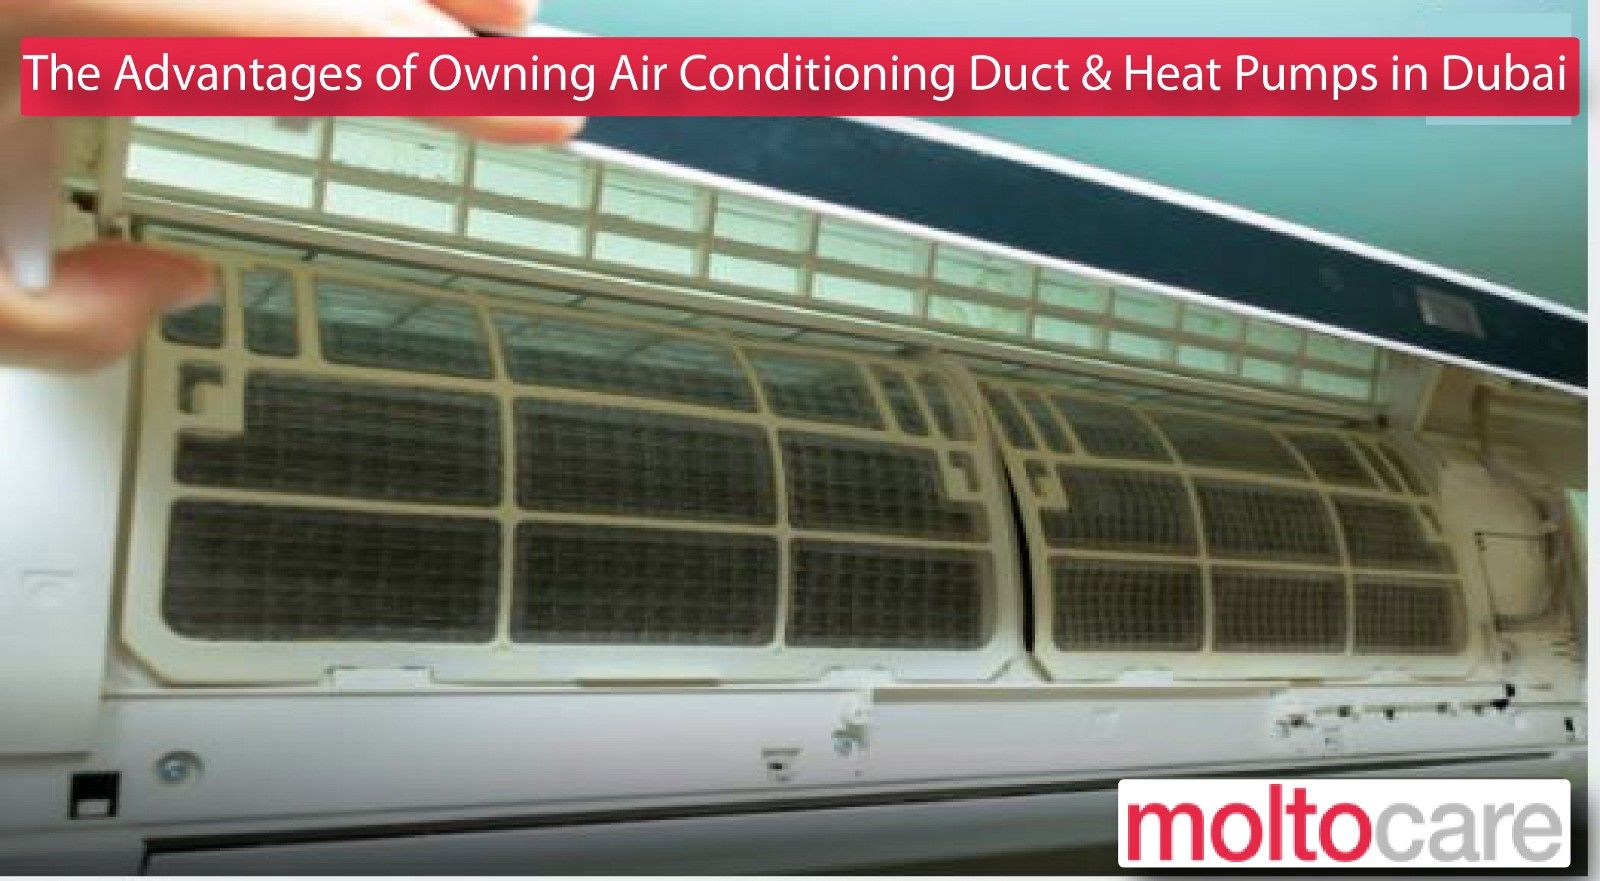 The Advantages Of Owning Air Conditioning Ducts And Heat Pumps In